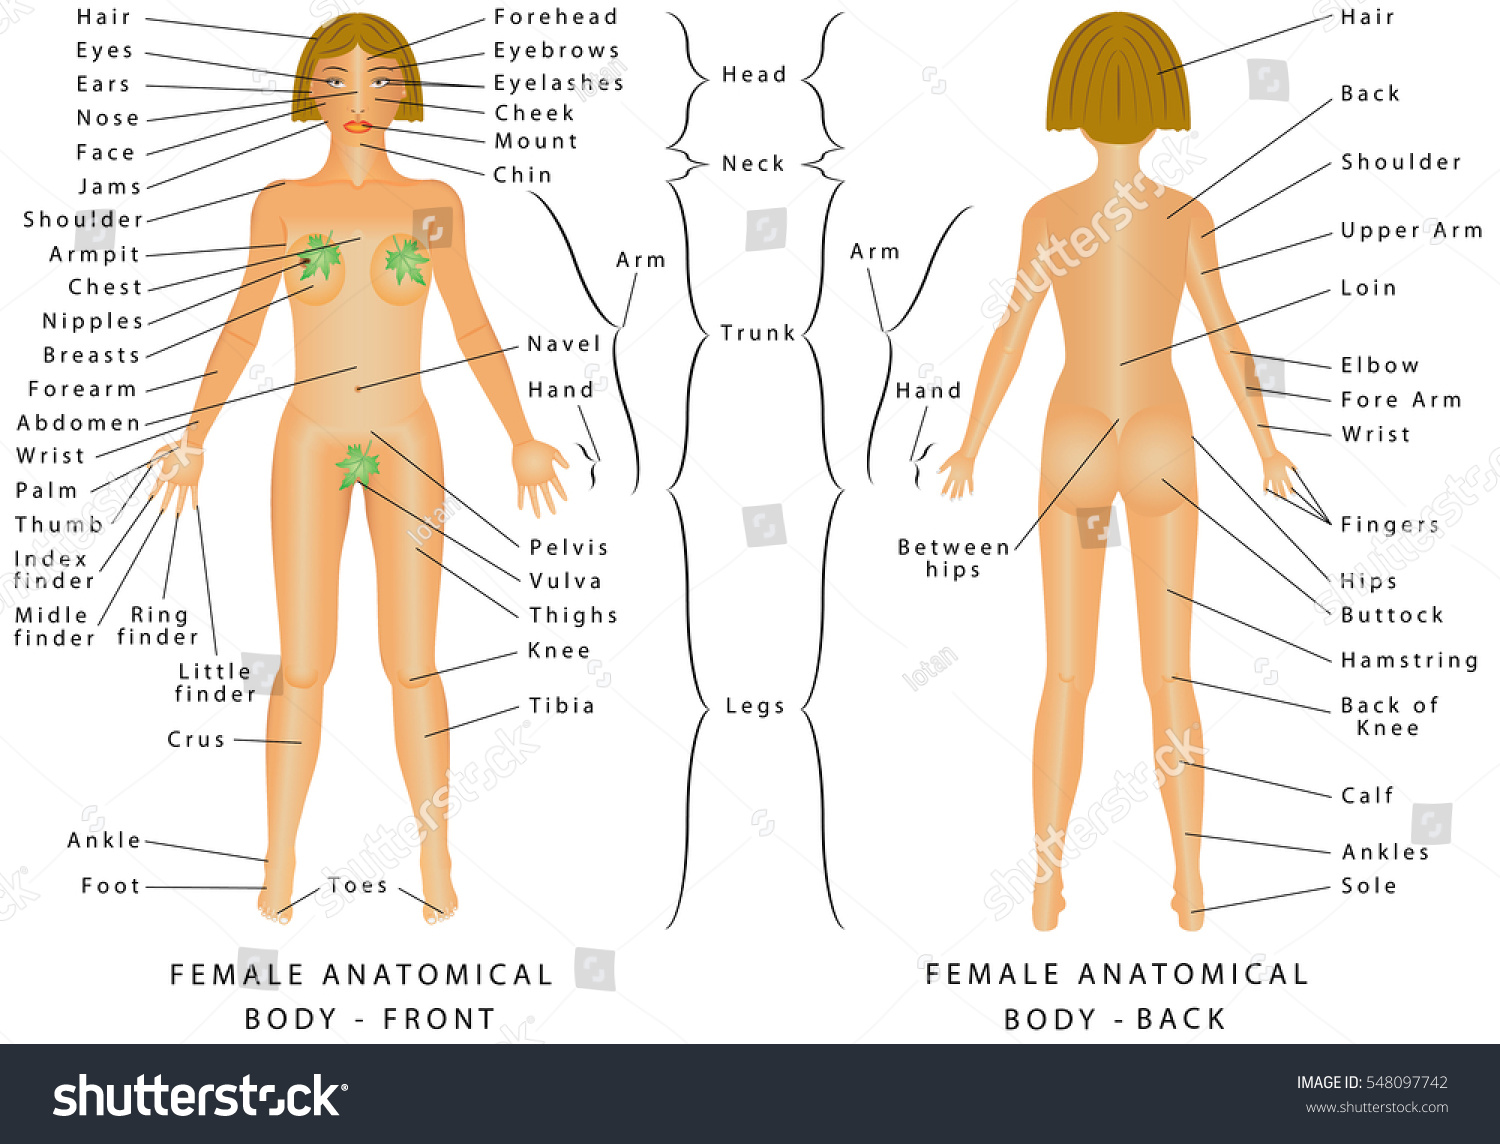 Regions Female Body Female Body Front Stock Vector (Royalty Free ...